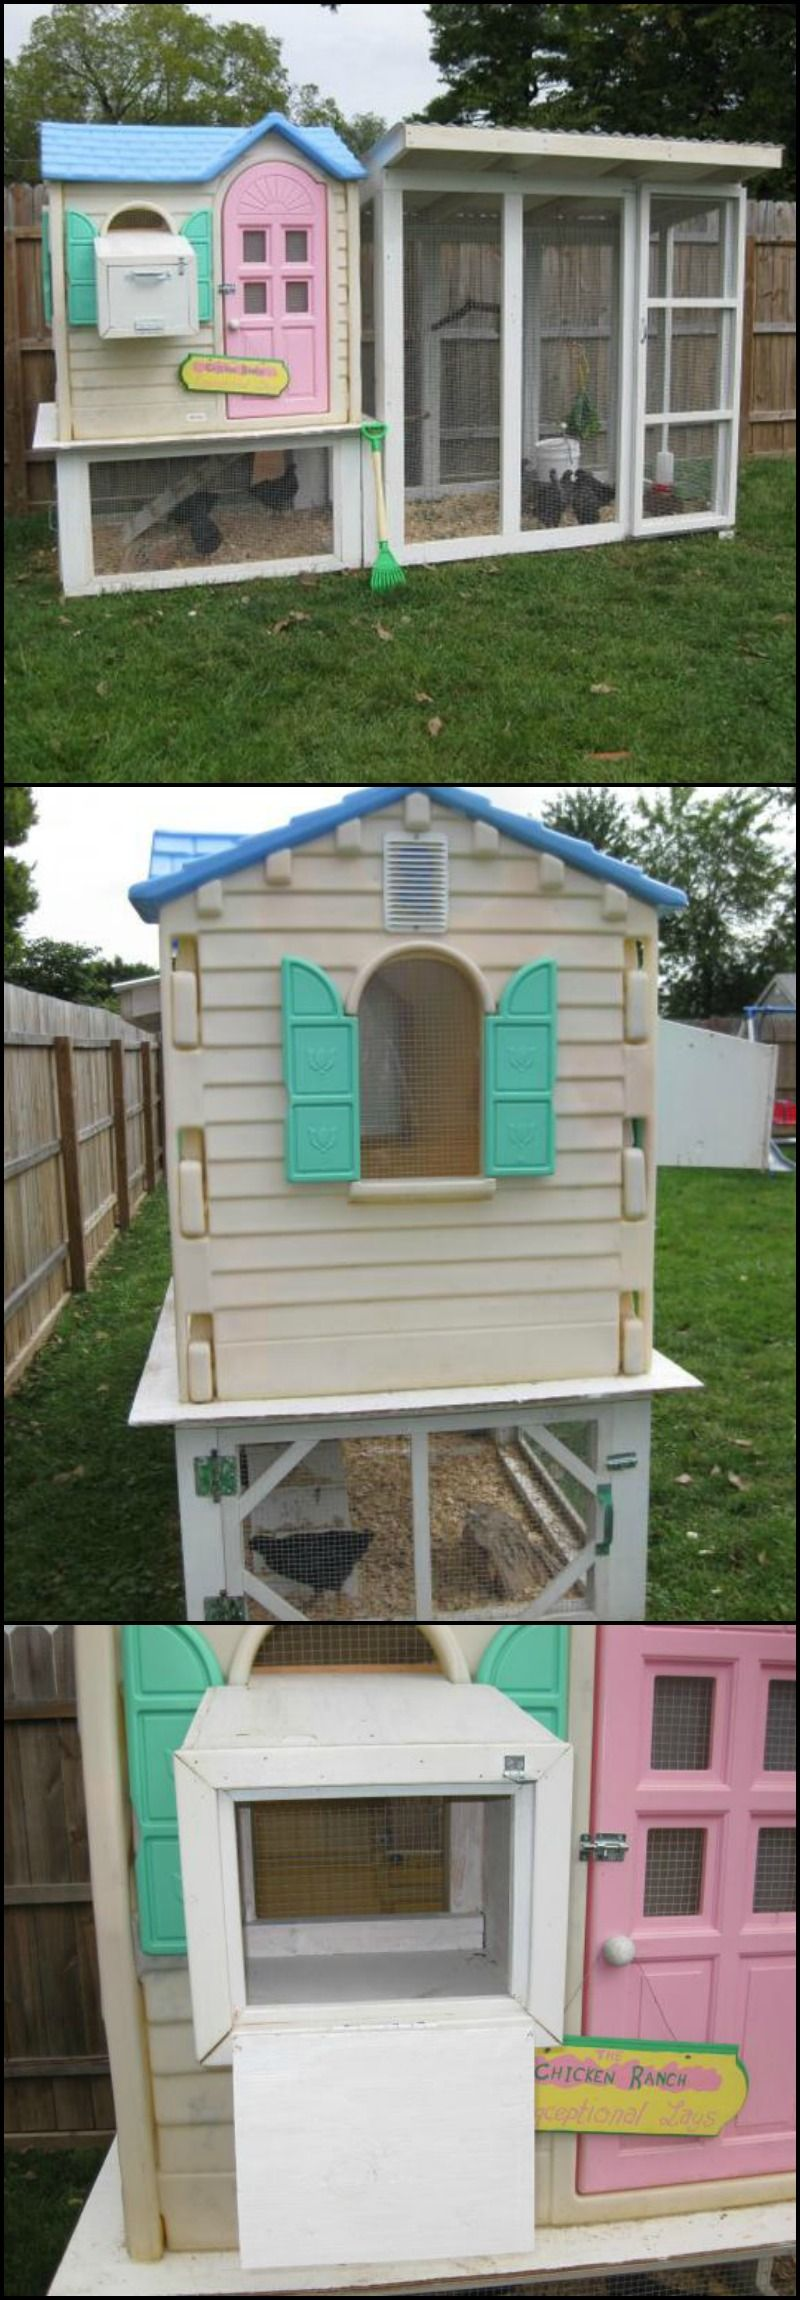 Turn an old playhouse into a chicken coop poulaillers for Cost to build a playhouse